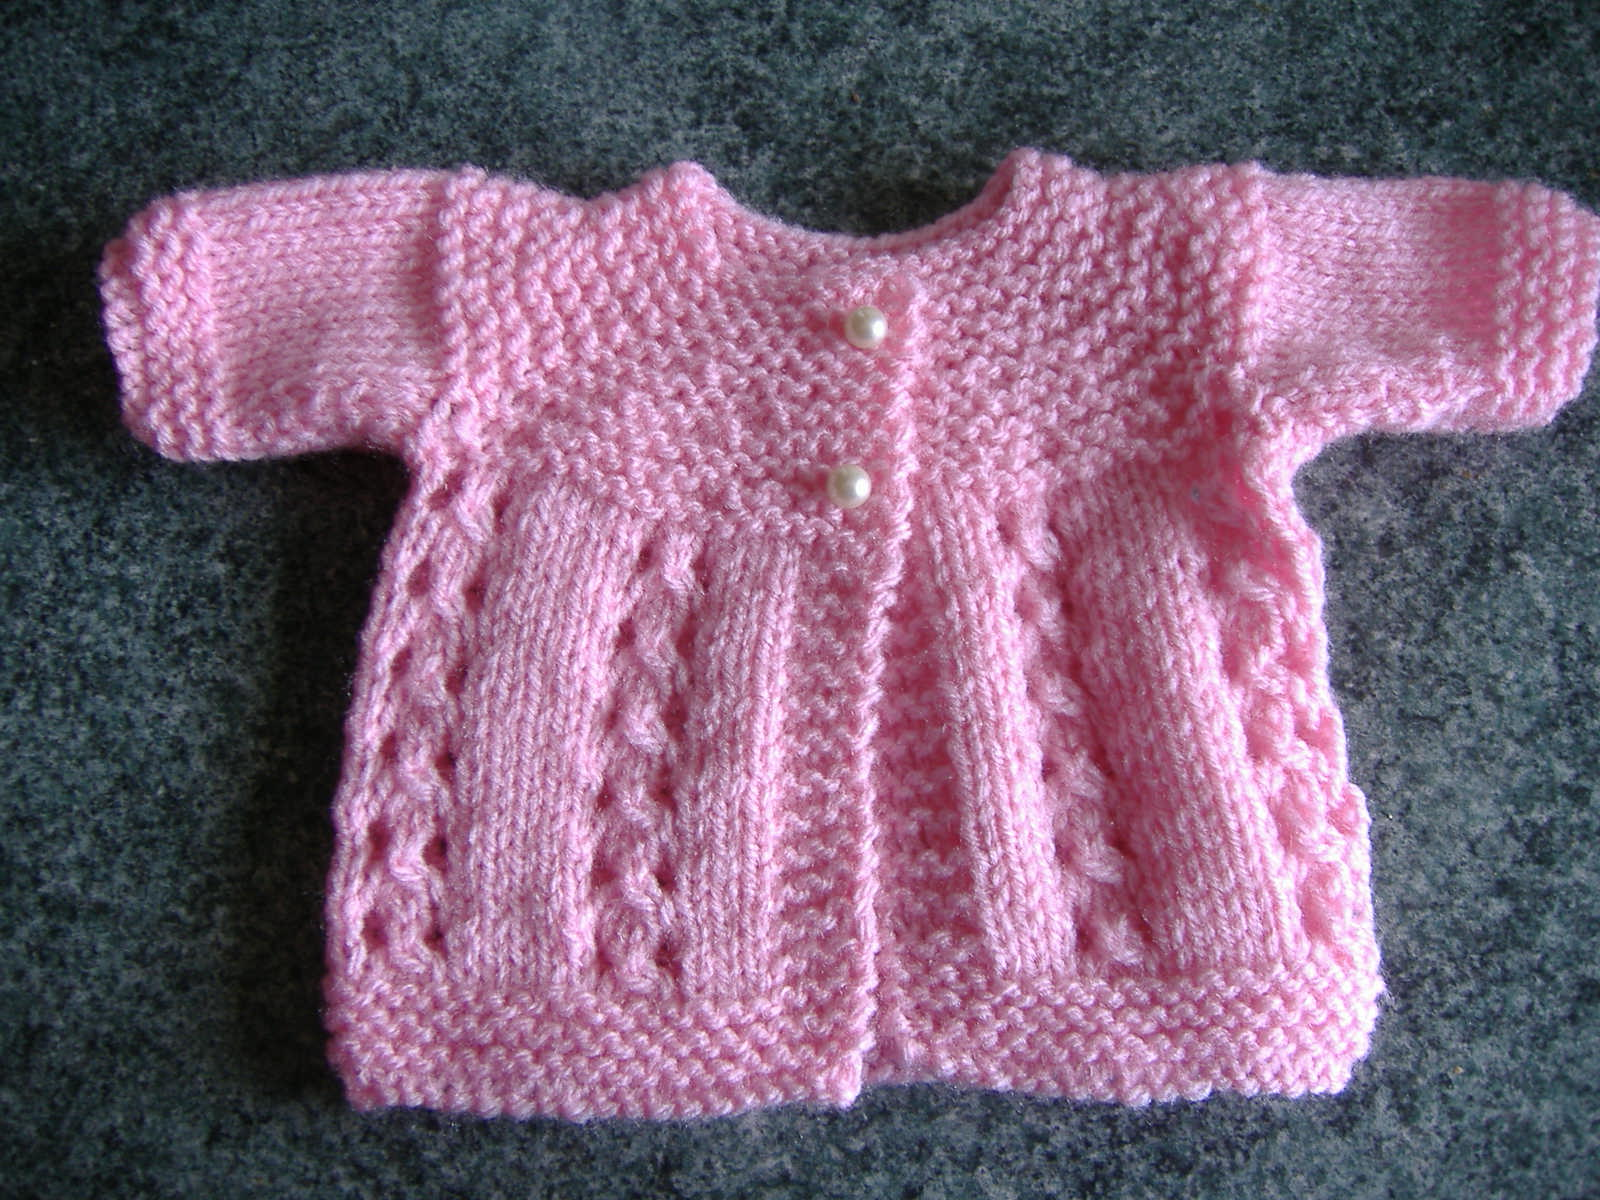 Preemie Knitting Patterns Free : mariannas lazy daisy days: Premature Baby Jackets